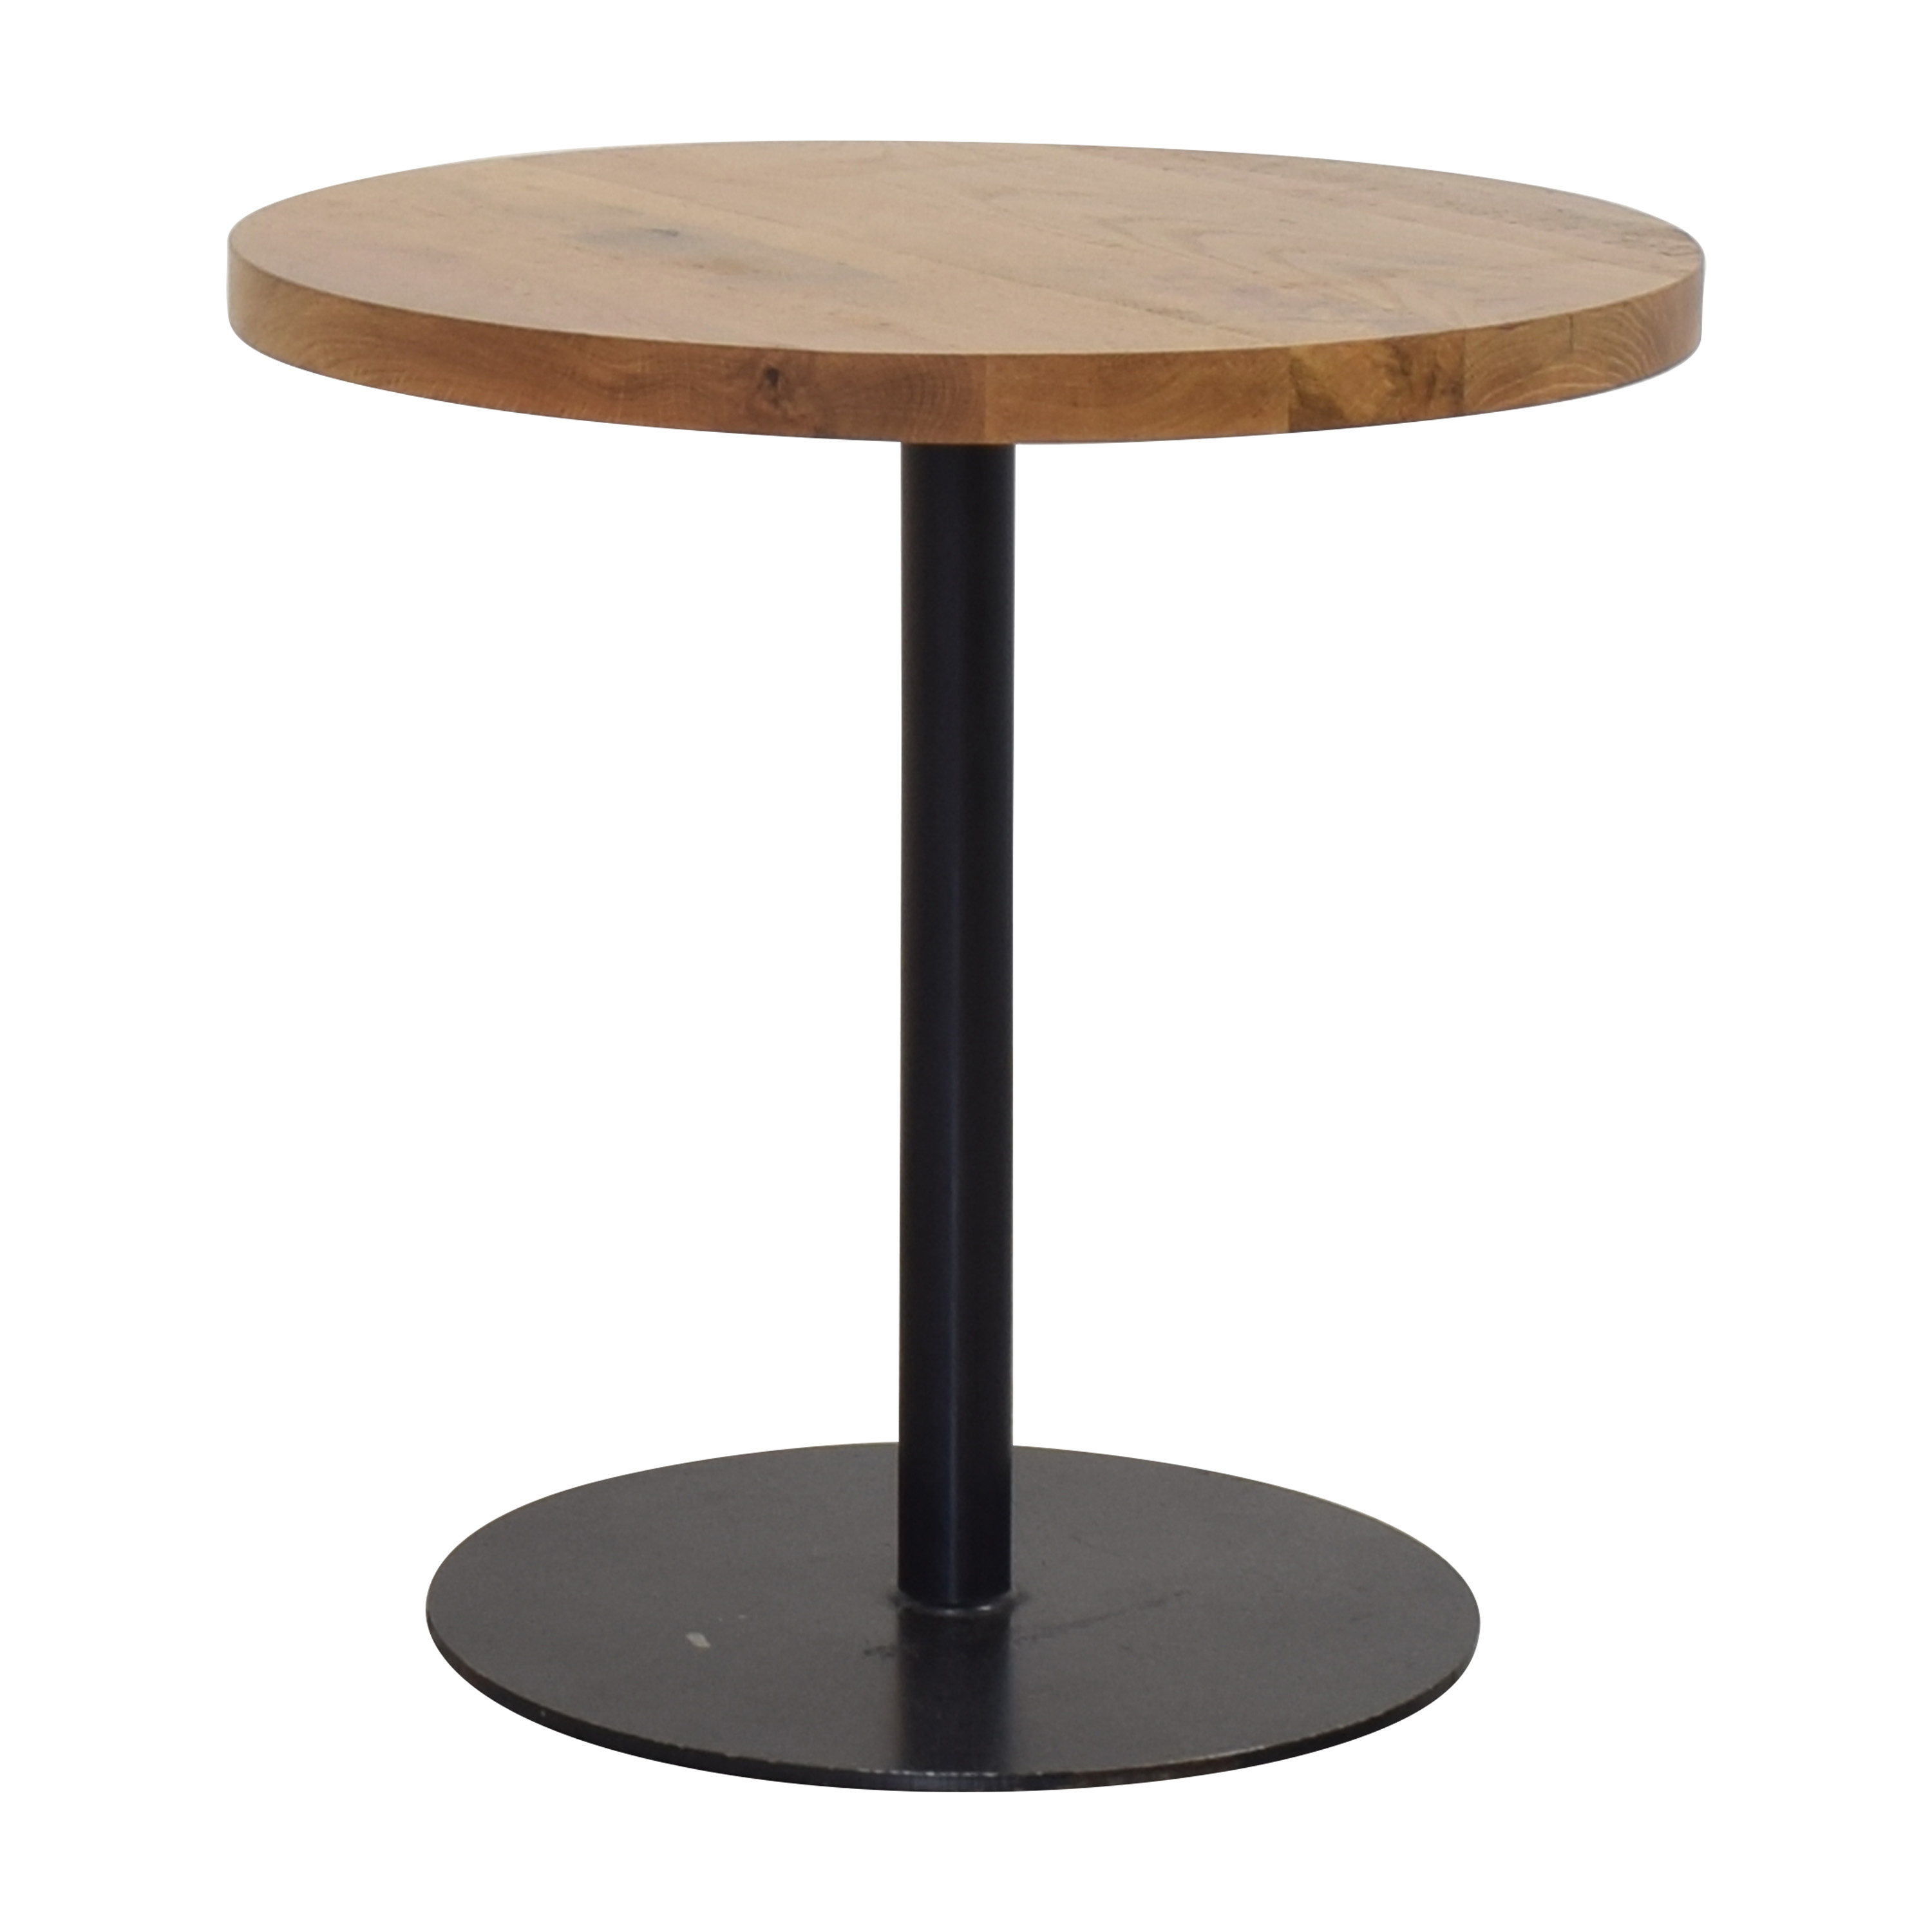 Crow Works Crow Works Round Base Table second hand